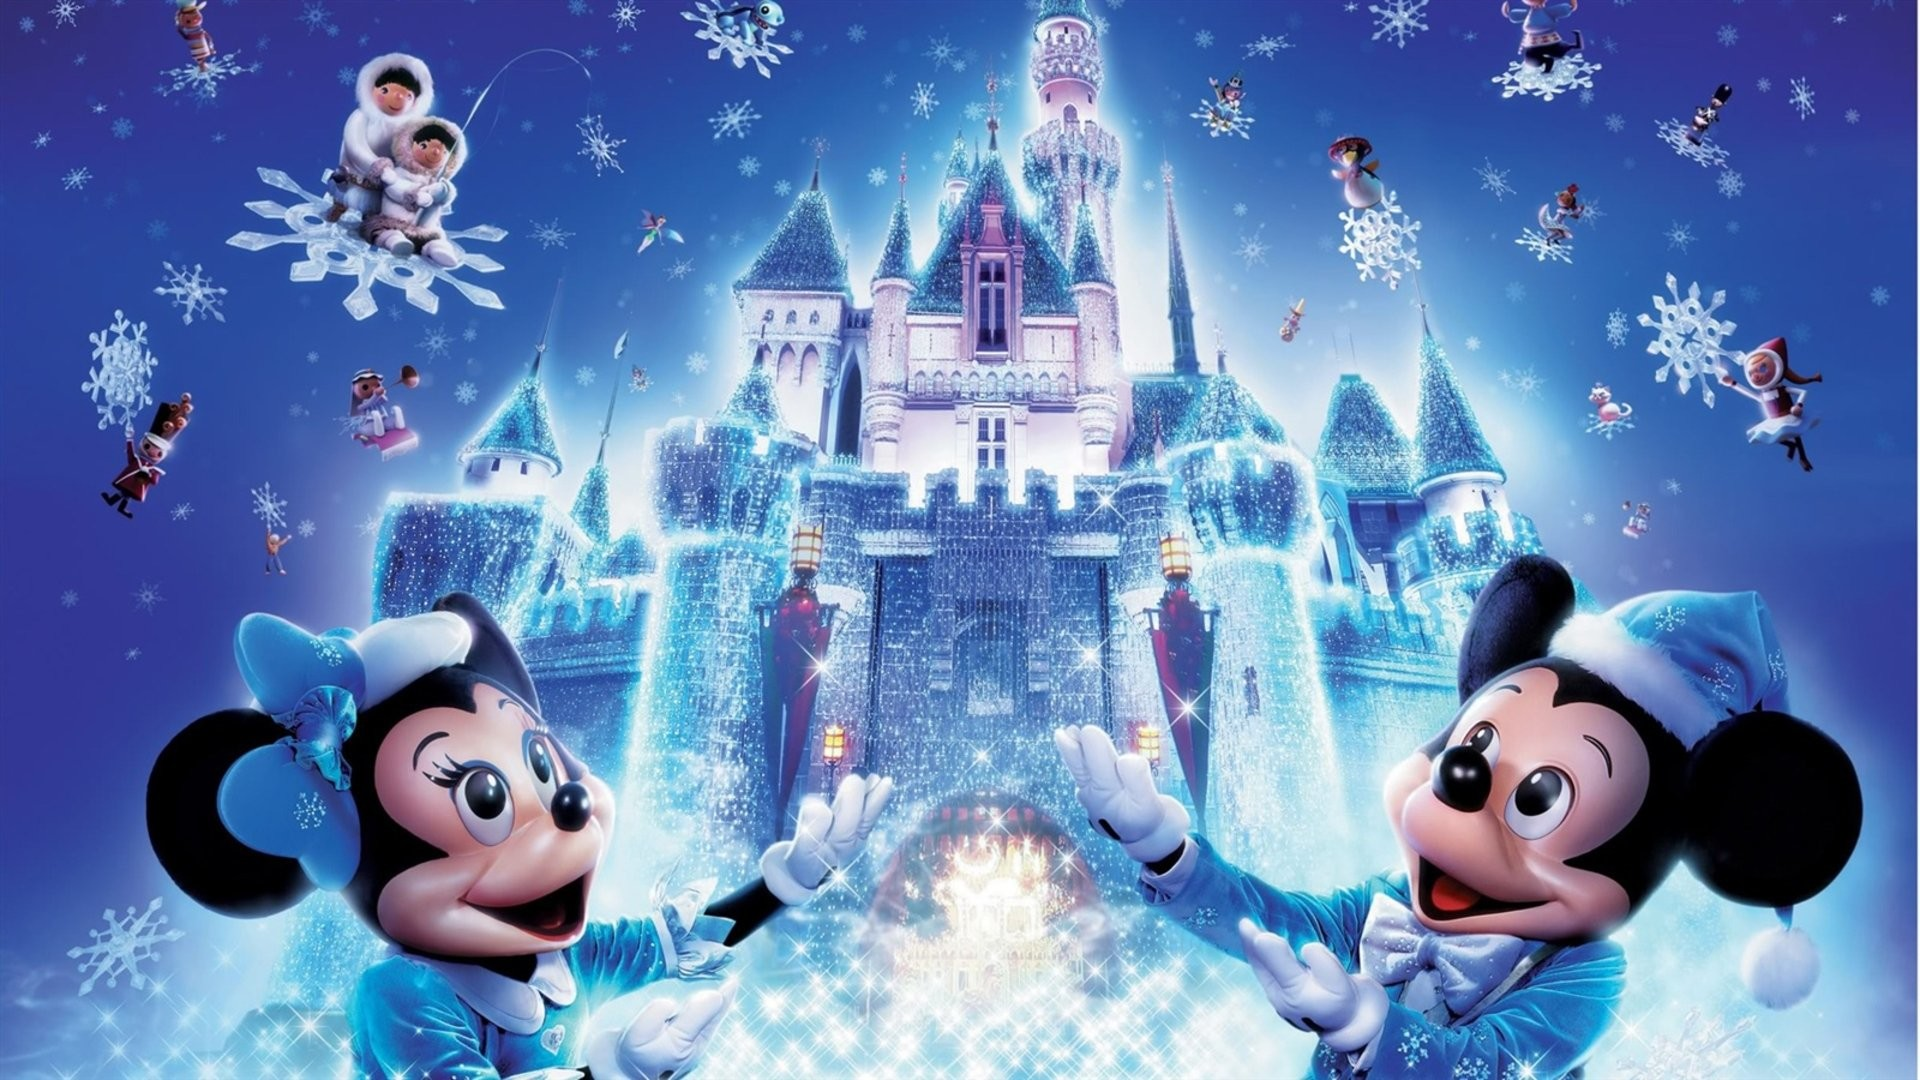 1920x1080 disney world 694840 share tags cool god beautiful scene christmas snow nature